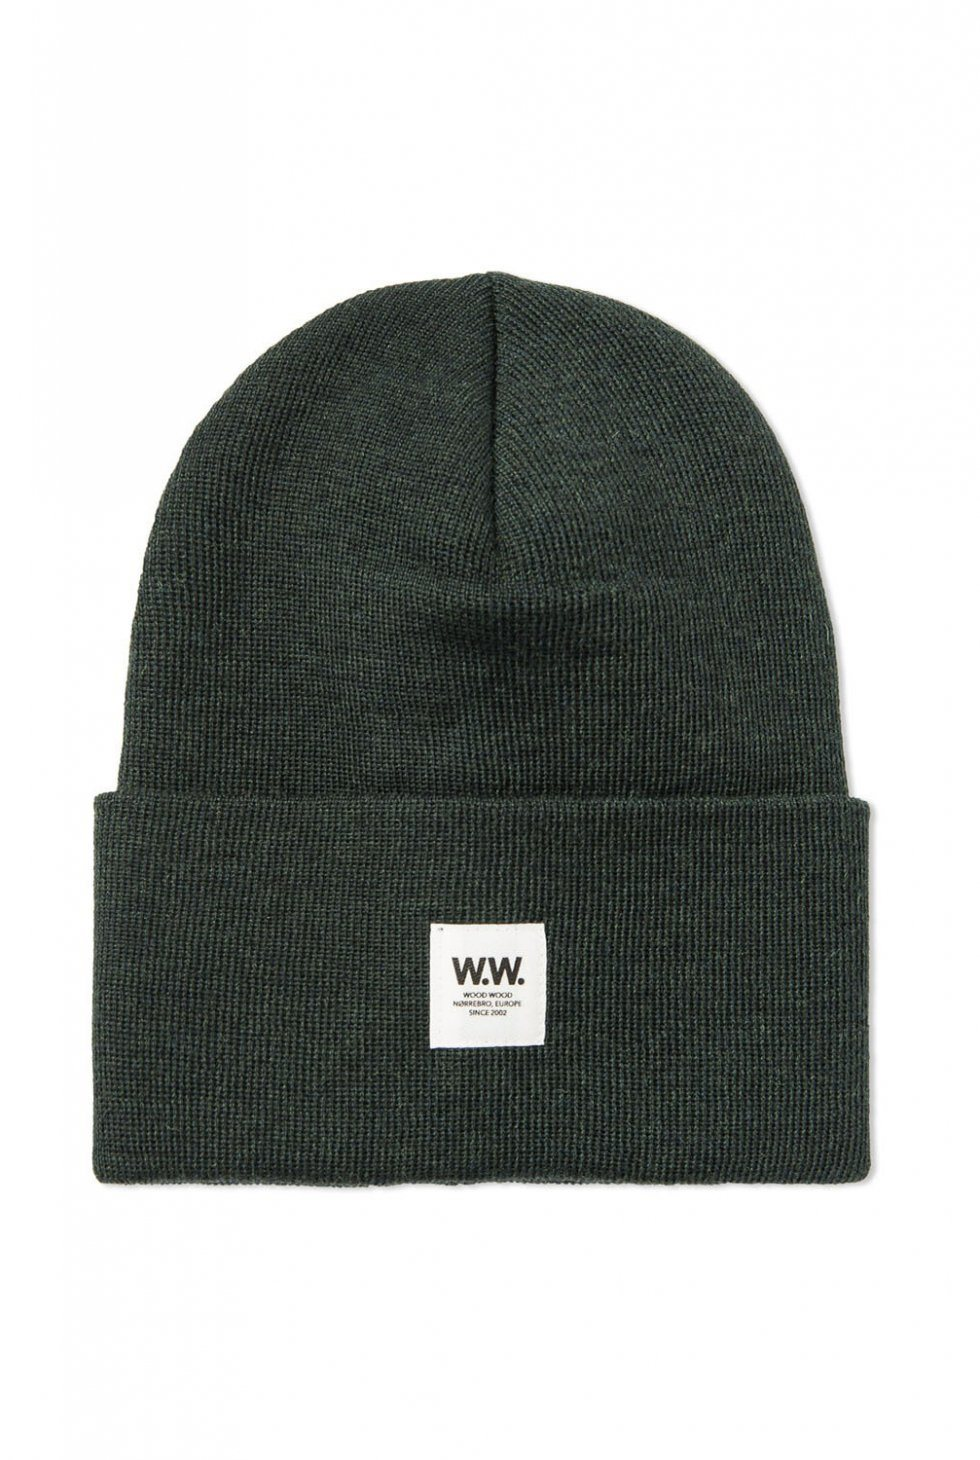 Gerald Tall Beanie Dark Green